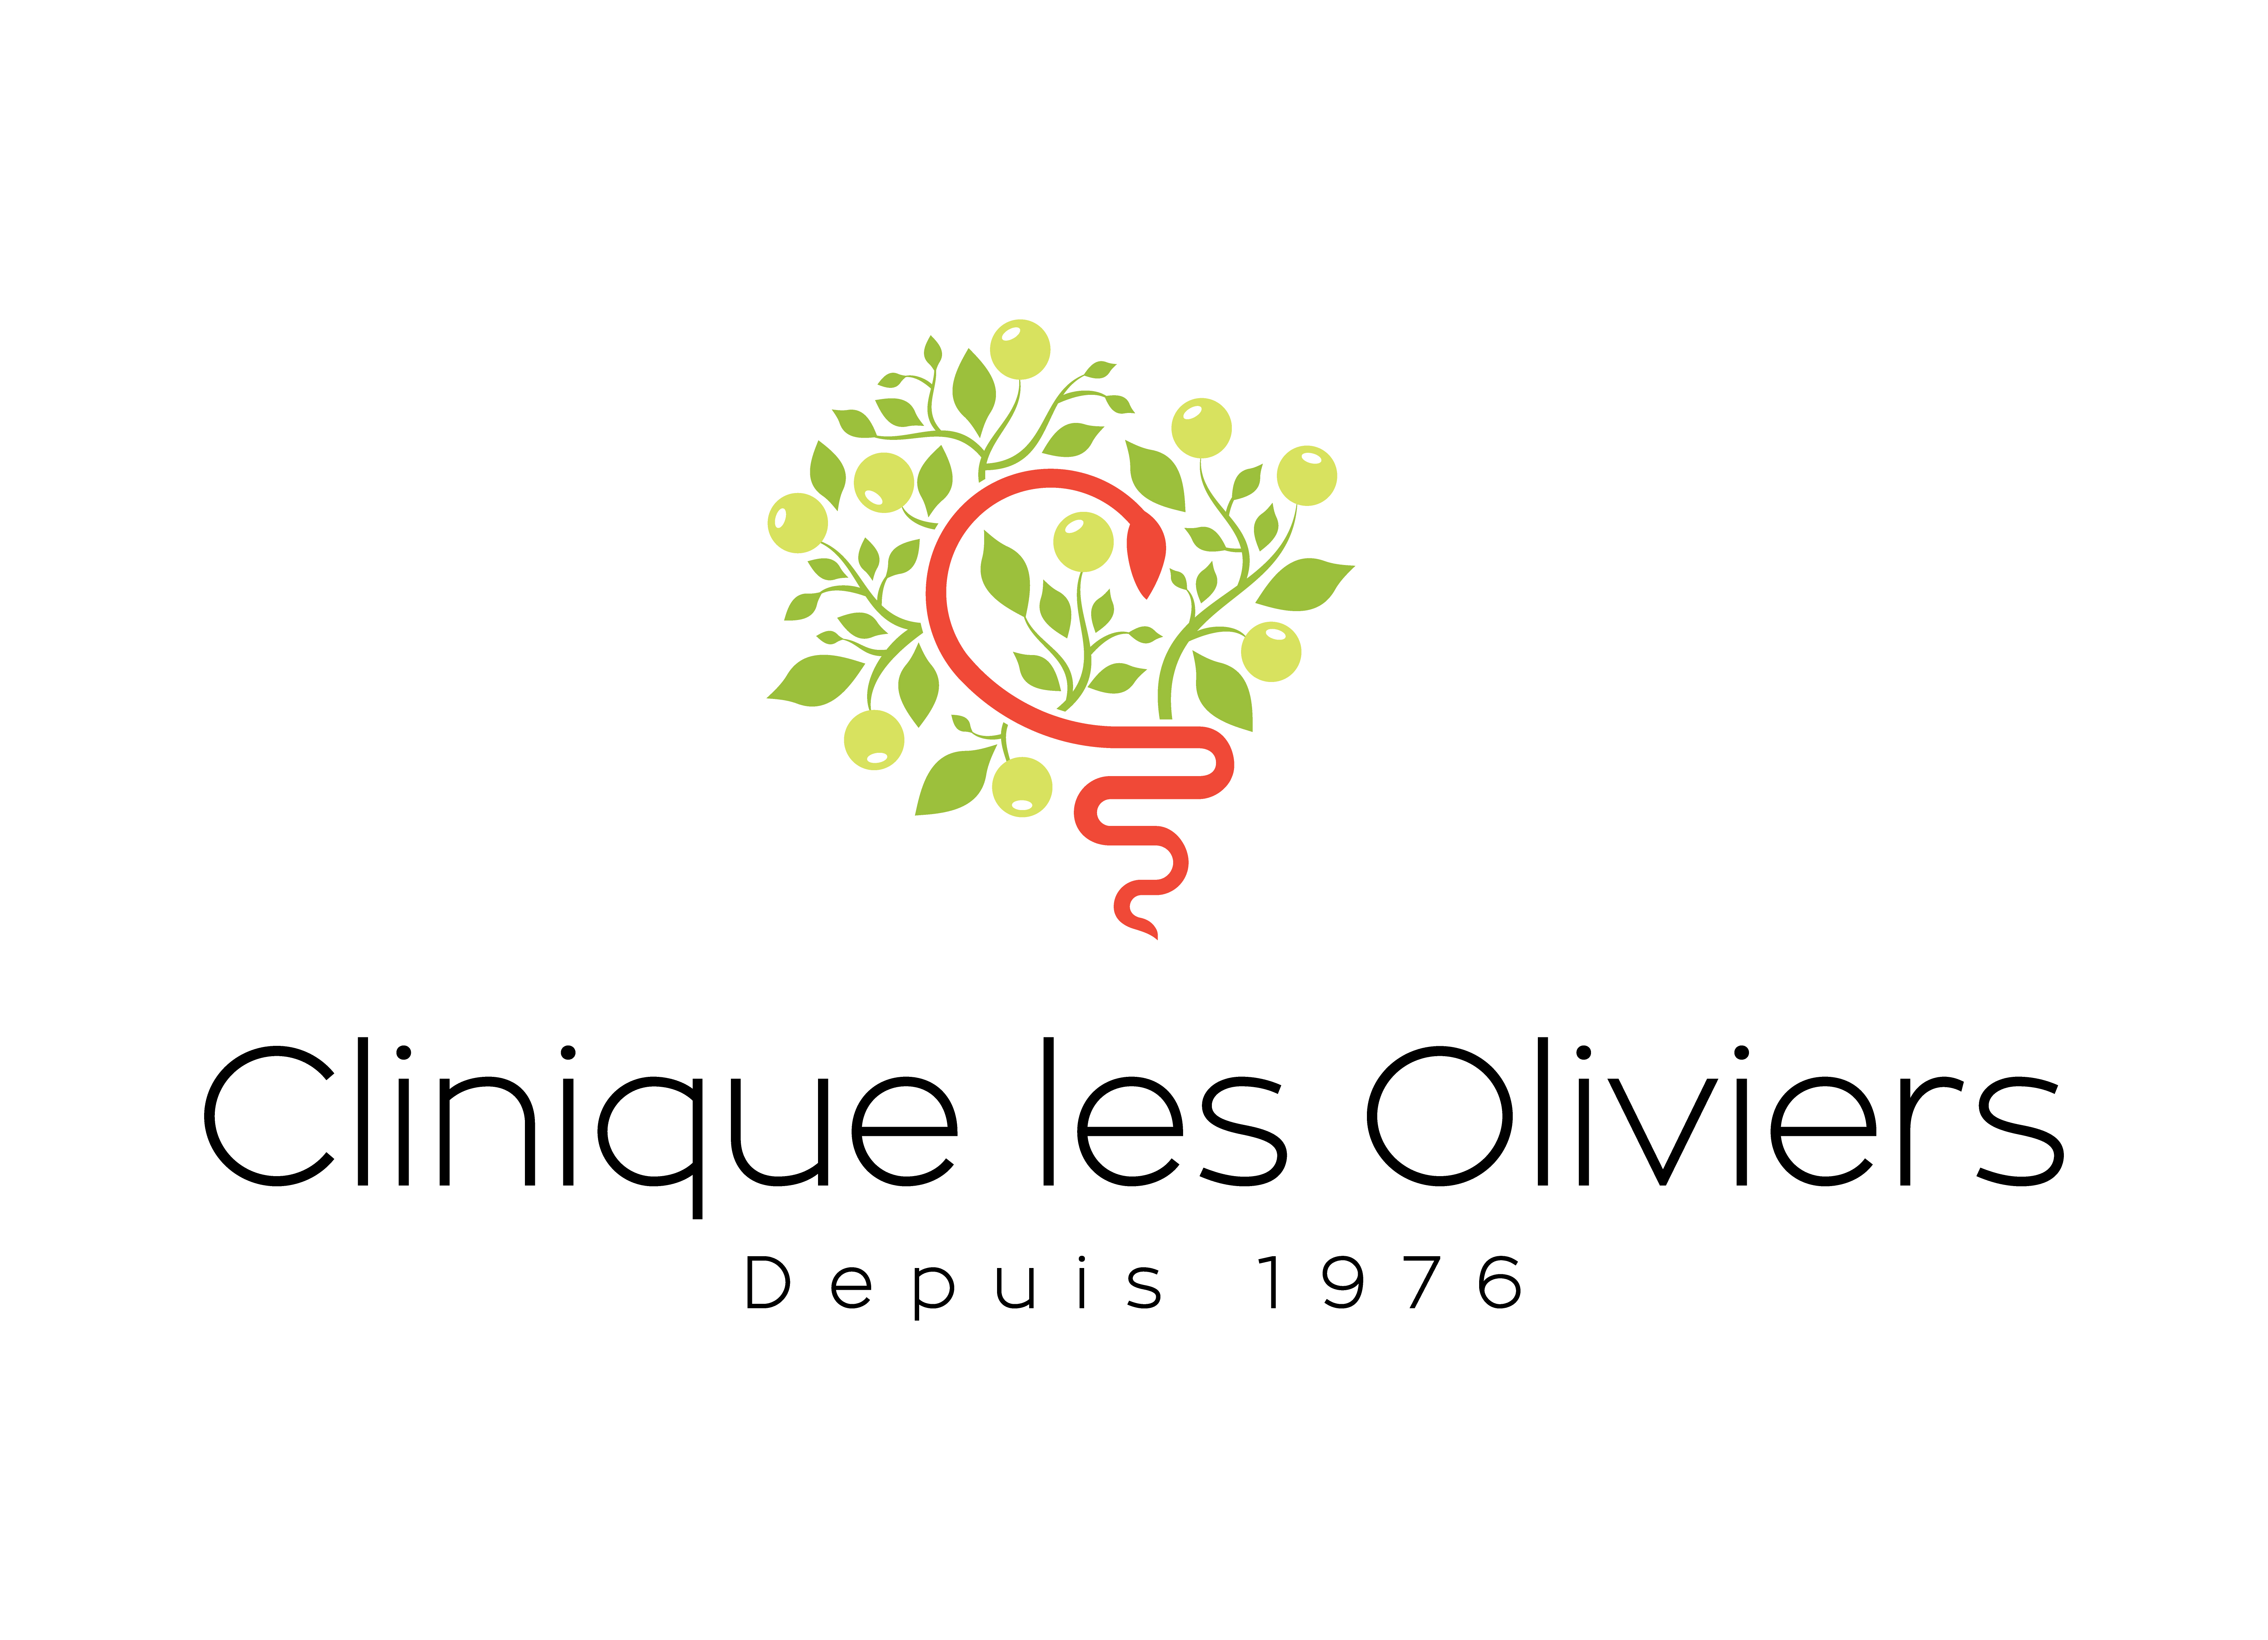 GROUPE LES OLIVIERS